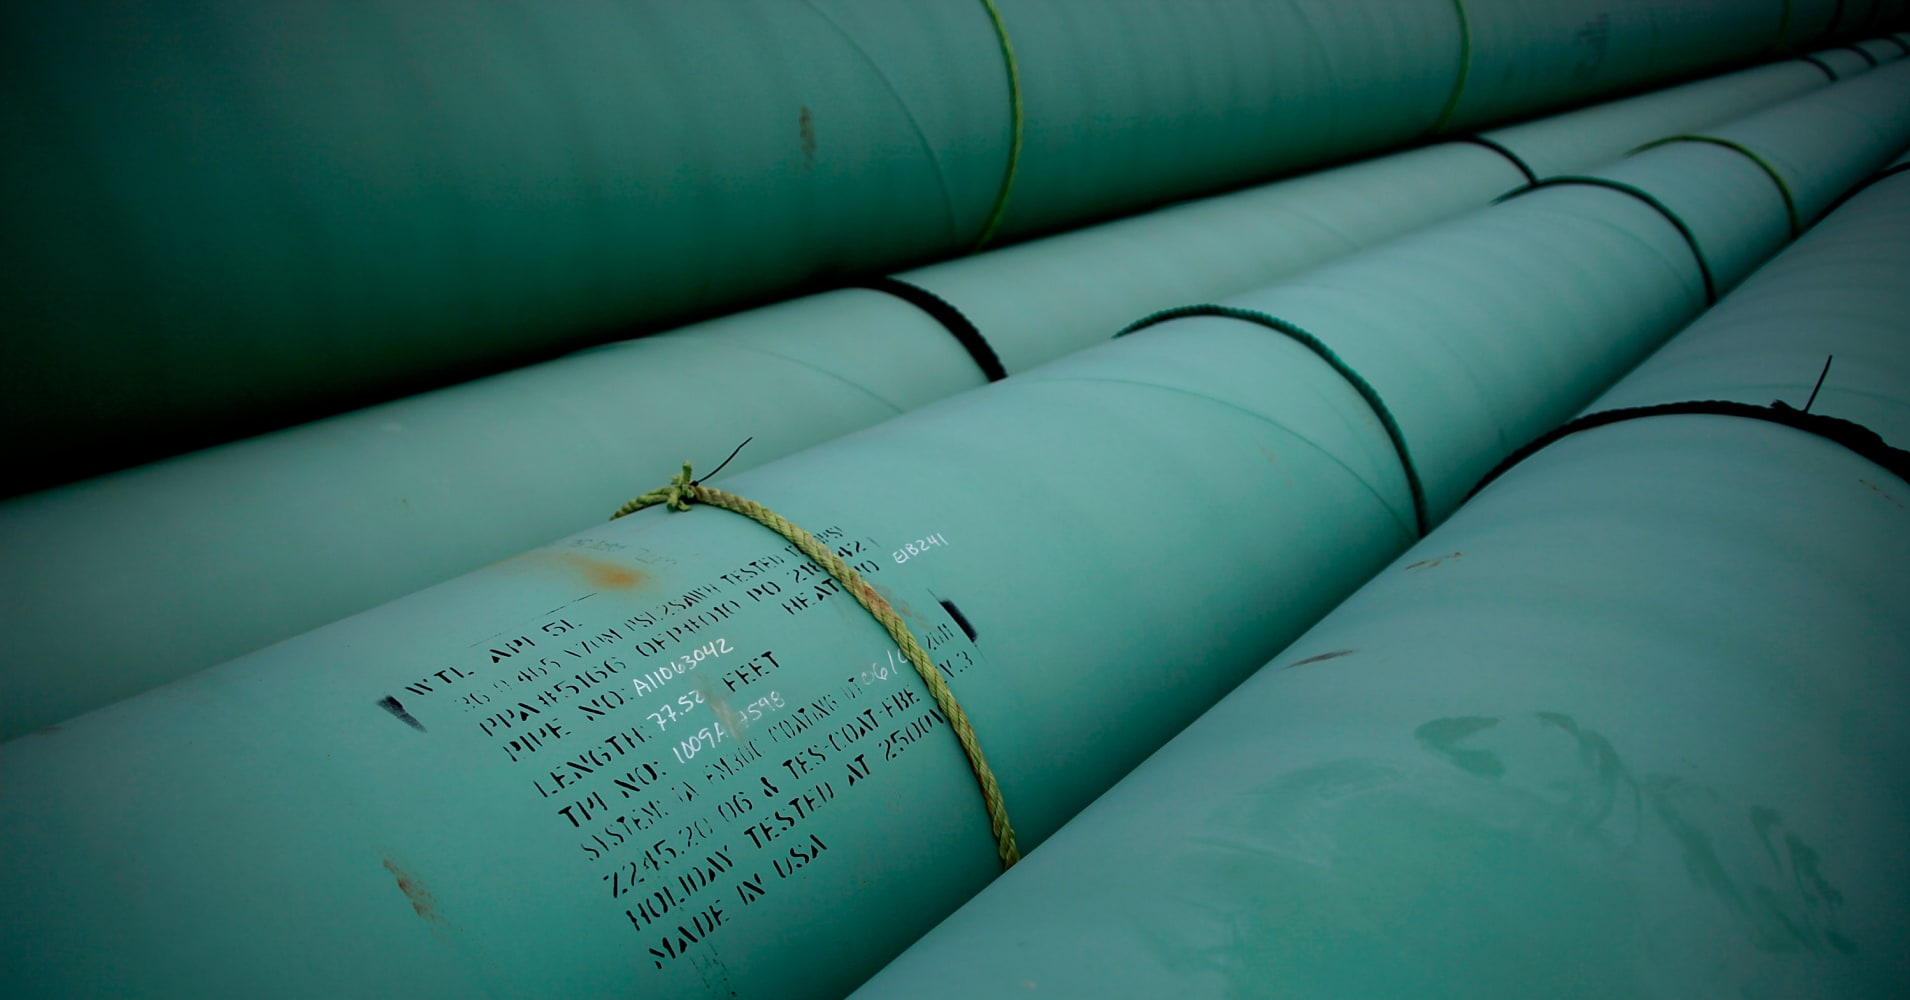 What Iraq's war may mean for the Keystone pipeline